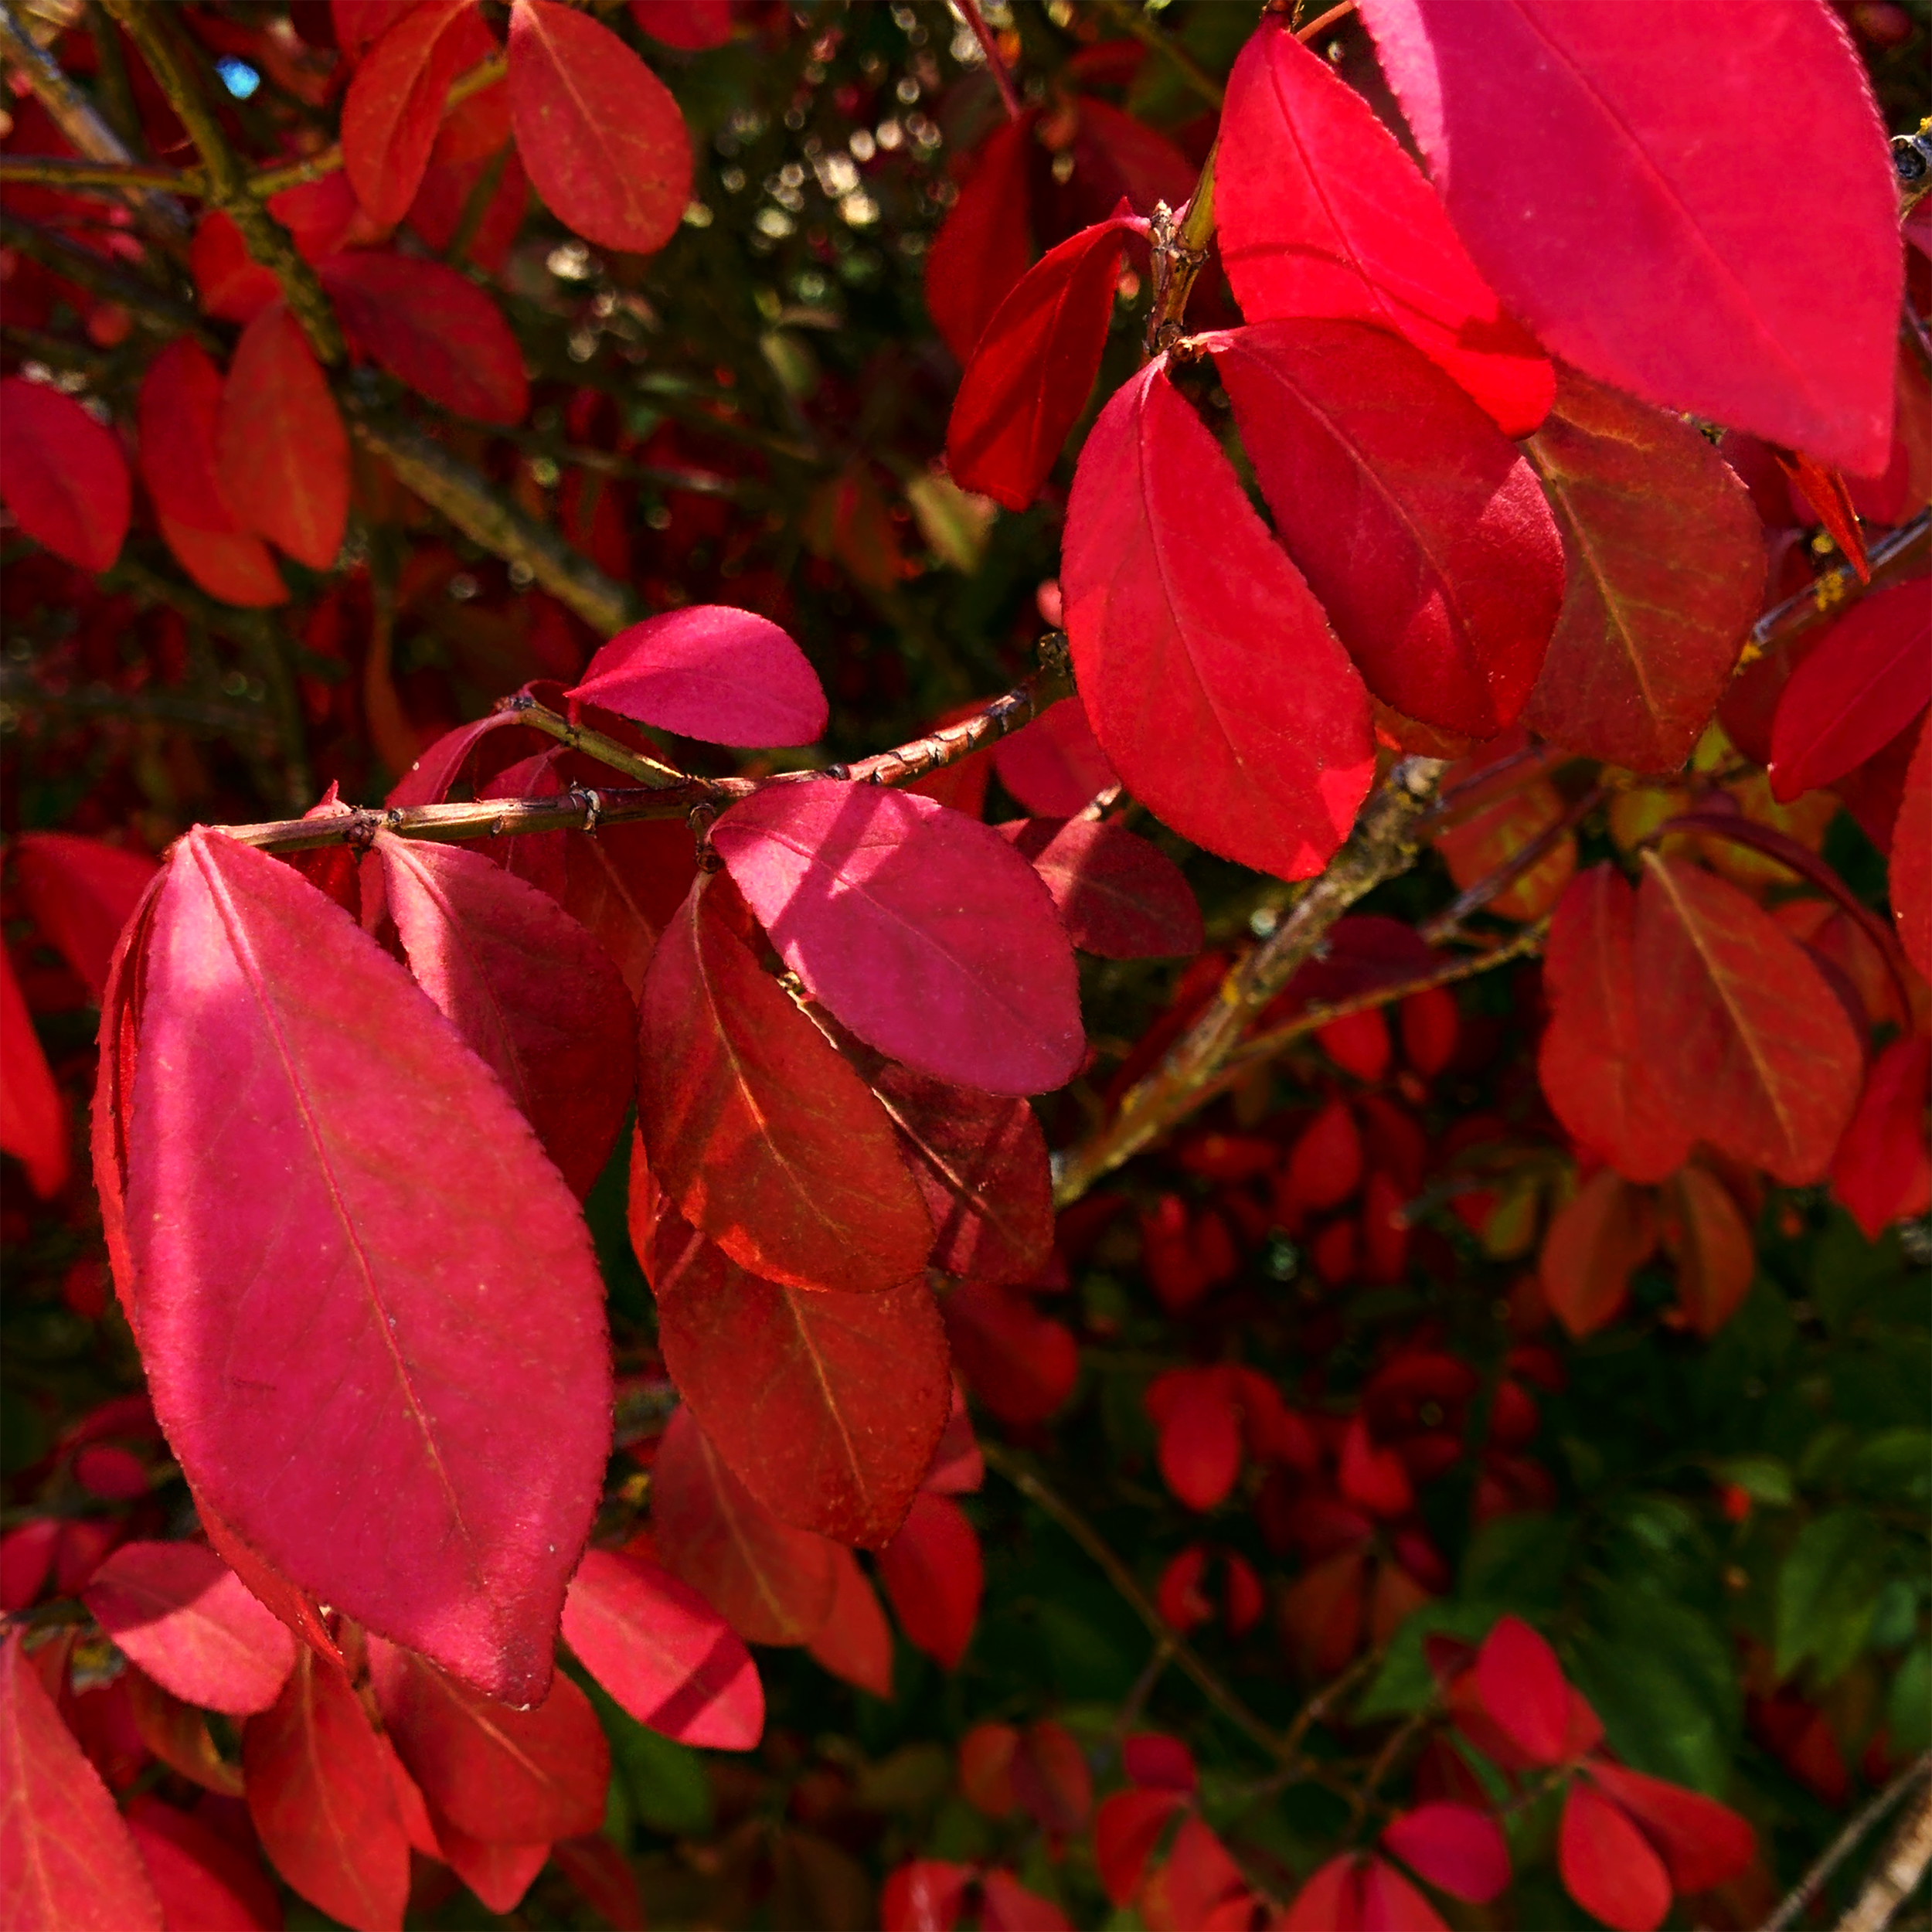 Red Leaves on Plant